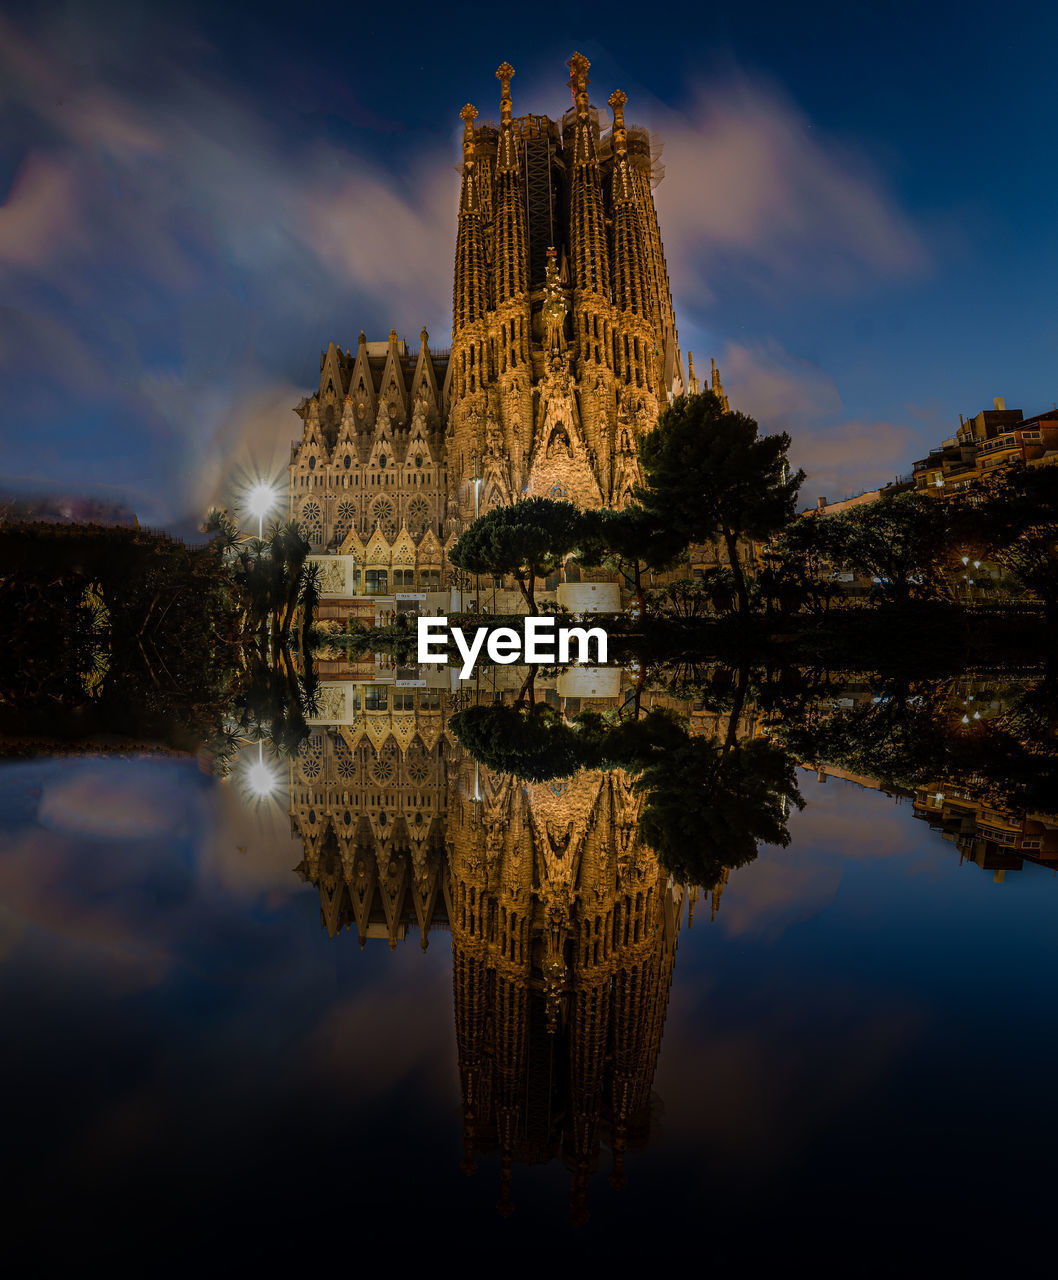 A frontal view of sagrada familia's nativity facade at night and it's reflection in a nearby pond